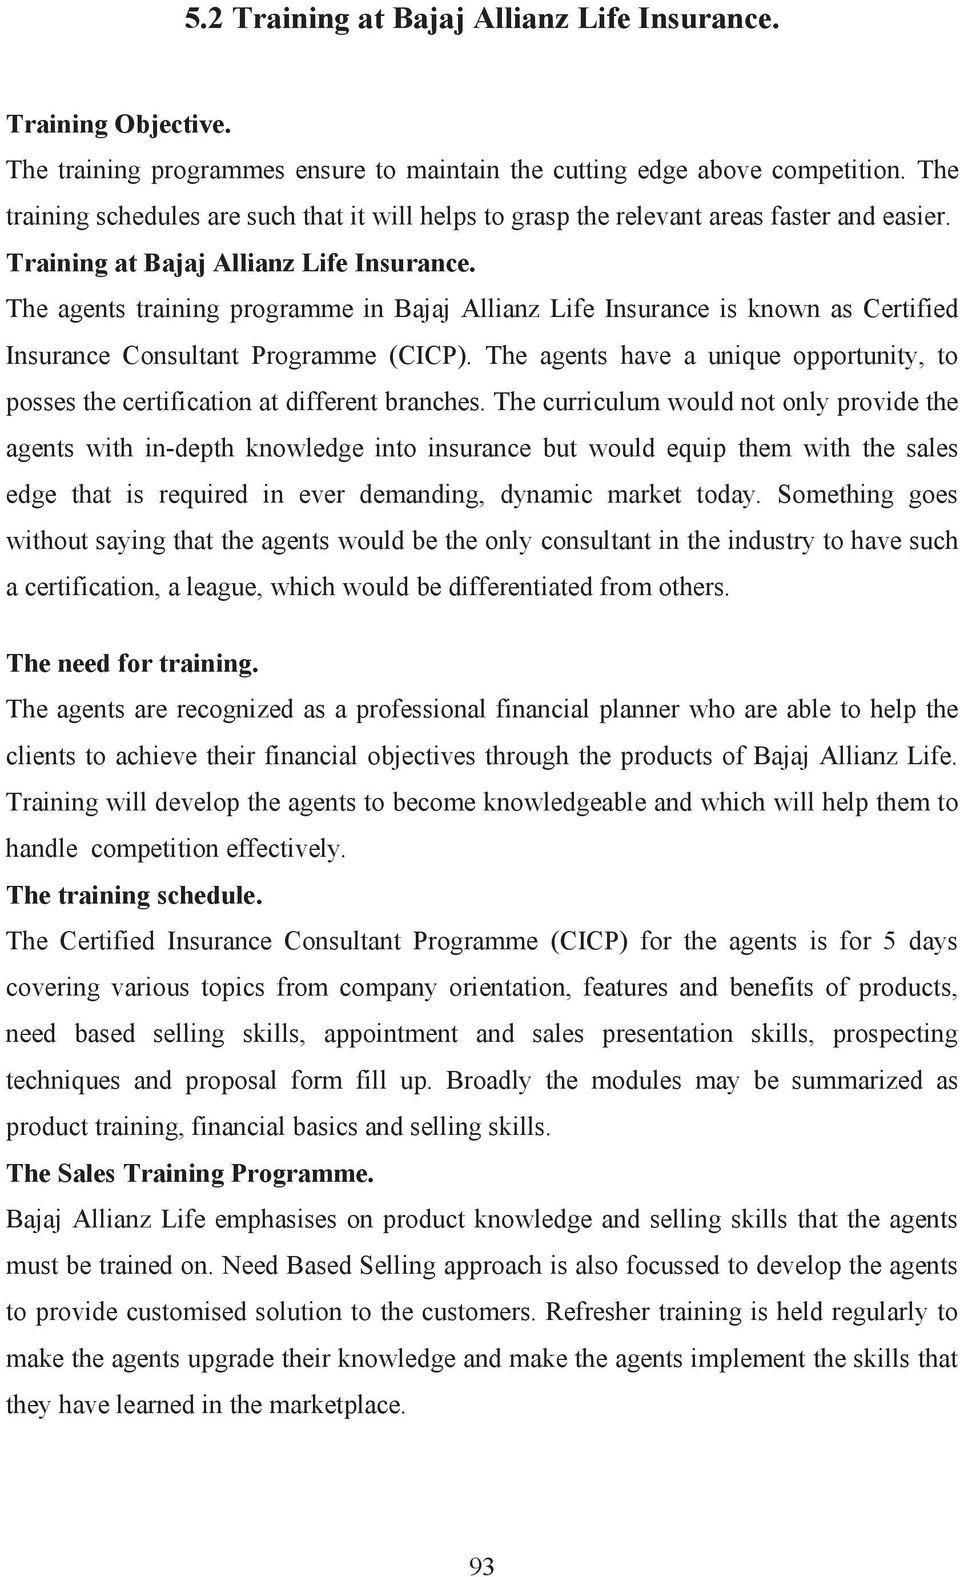 The agents training programme in Bajaj Allianz Life Insurance is known as Certified Insurance Consultant Programme (CICP).